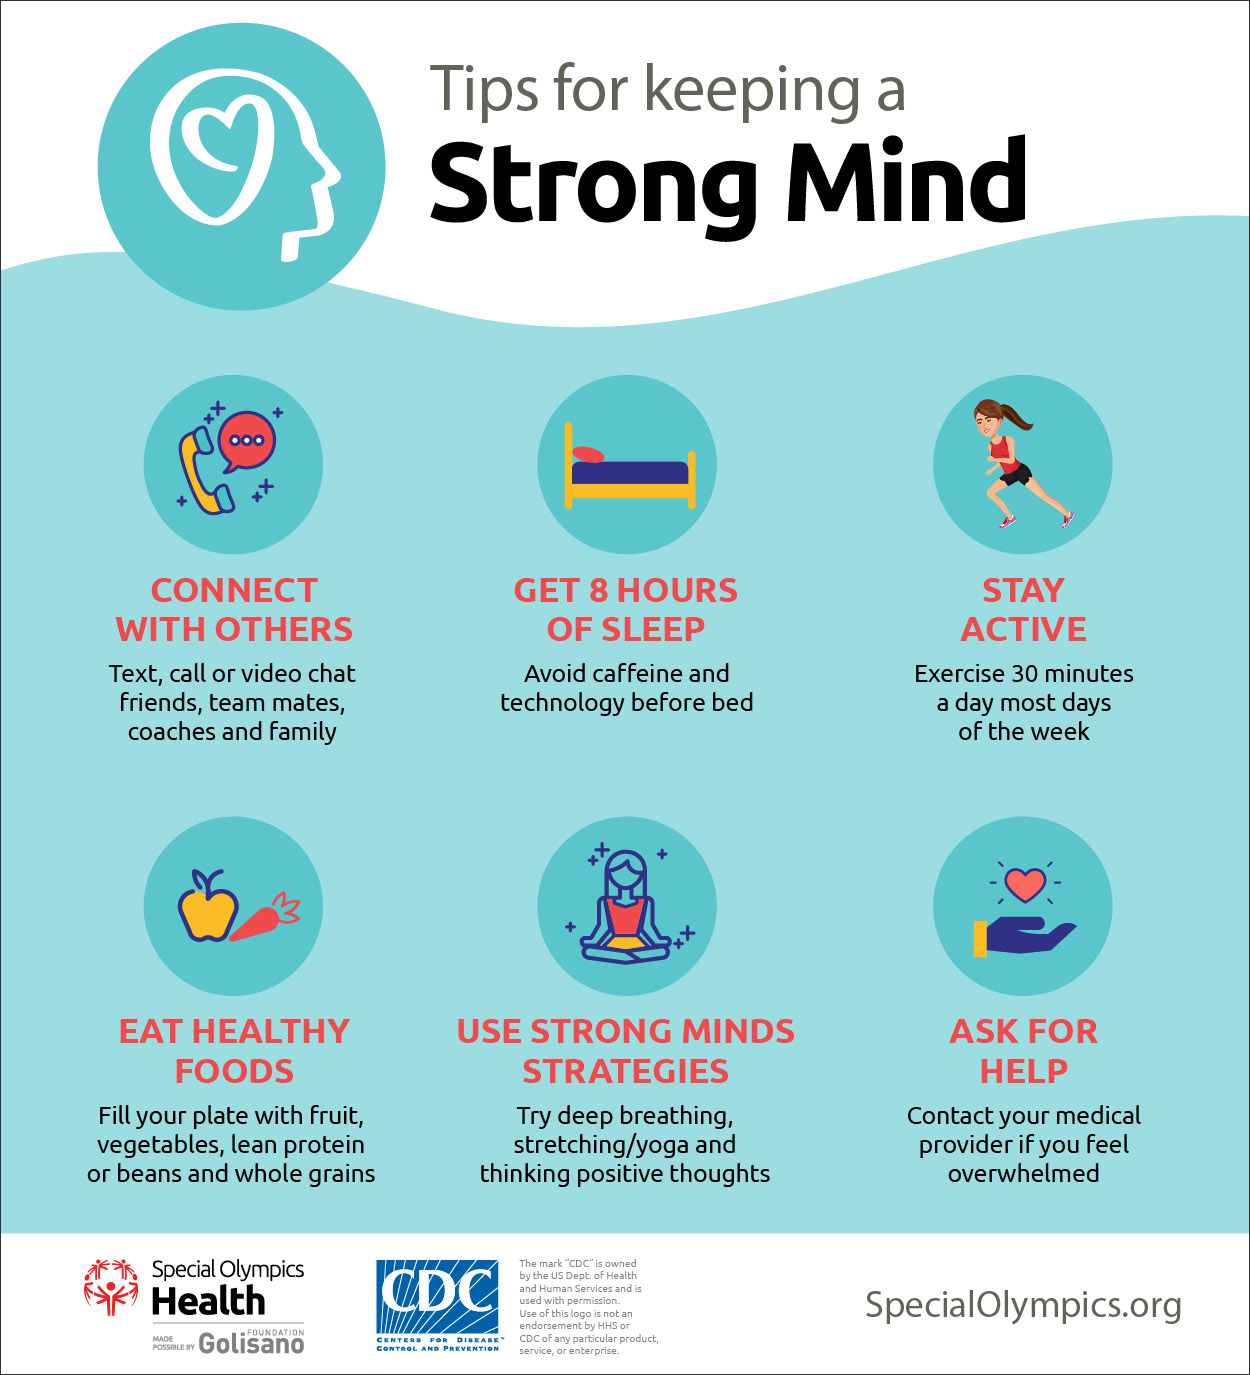 Tips for keeping a strong mind